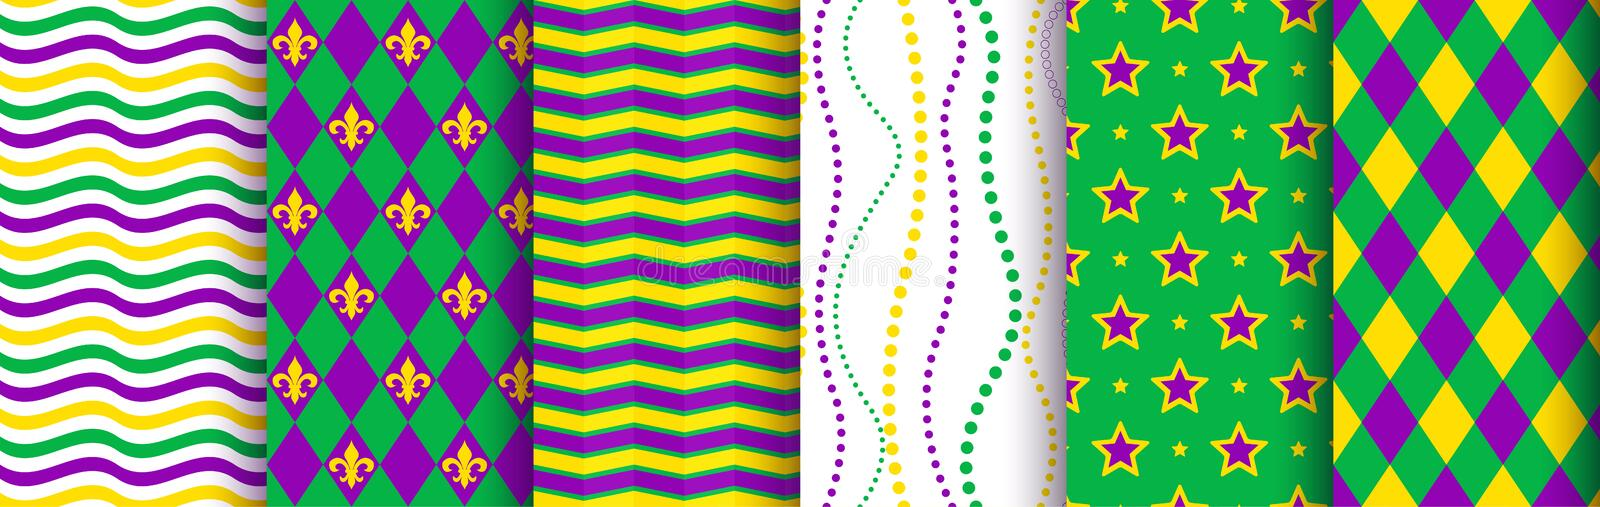 Mardi gras background, seamless pattern set. Pattern swatches included in the Swatches panel stock photo